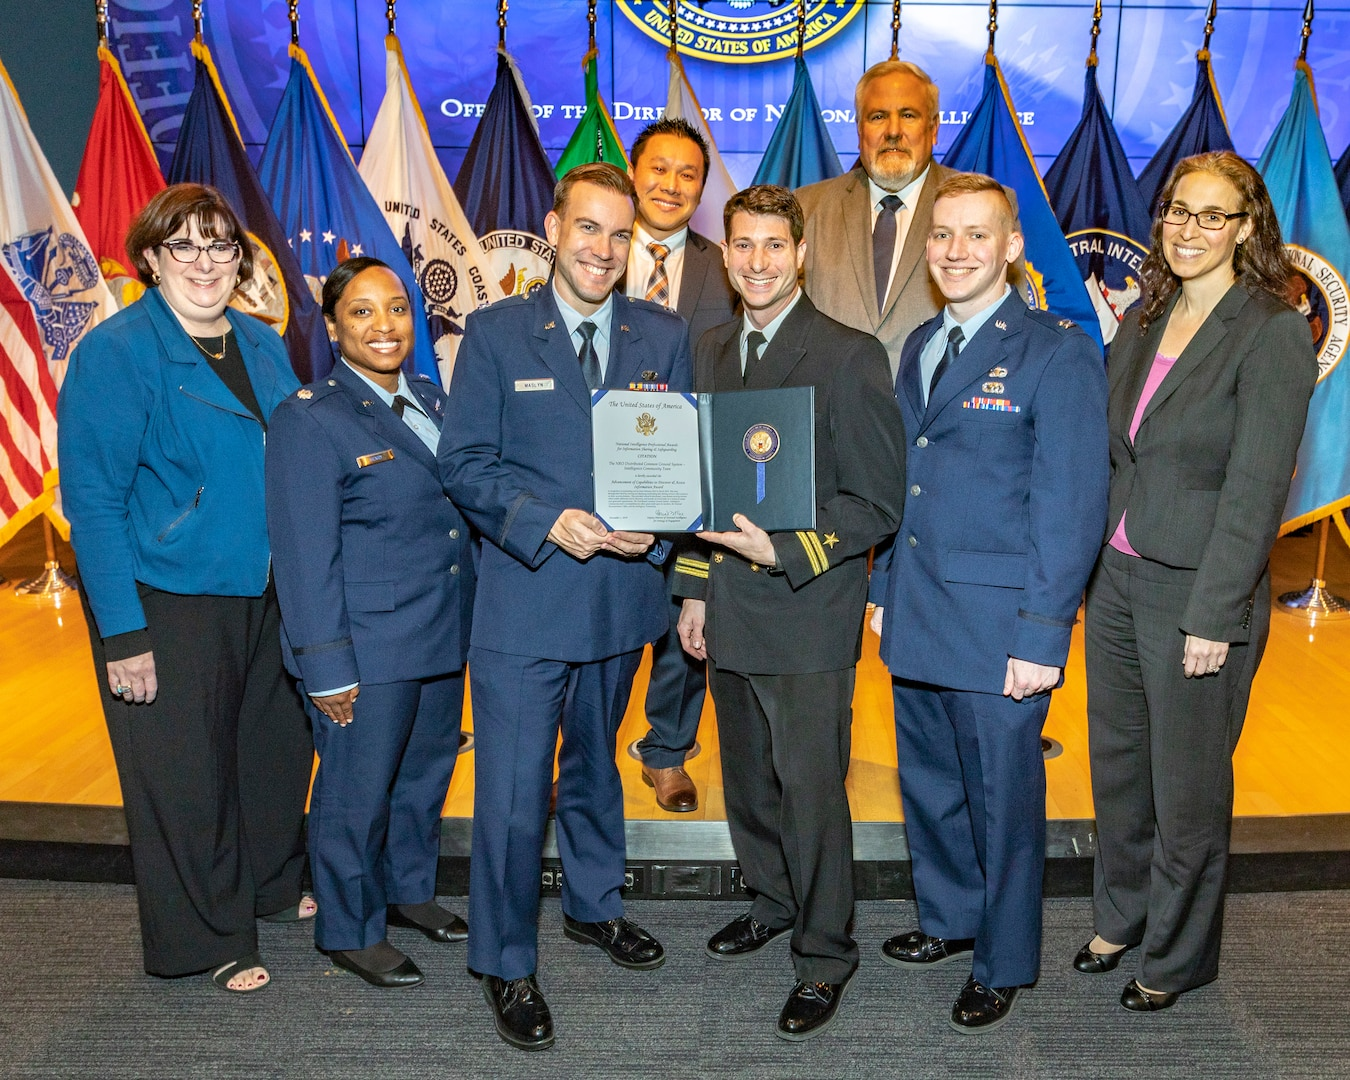 NRO receives IC team award for outstanding service